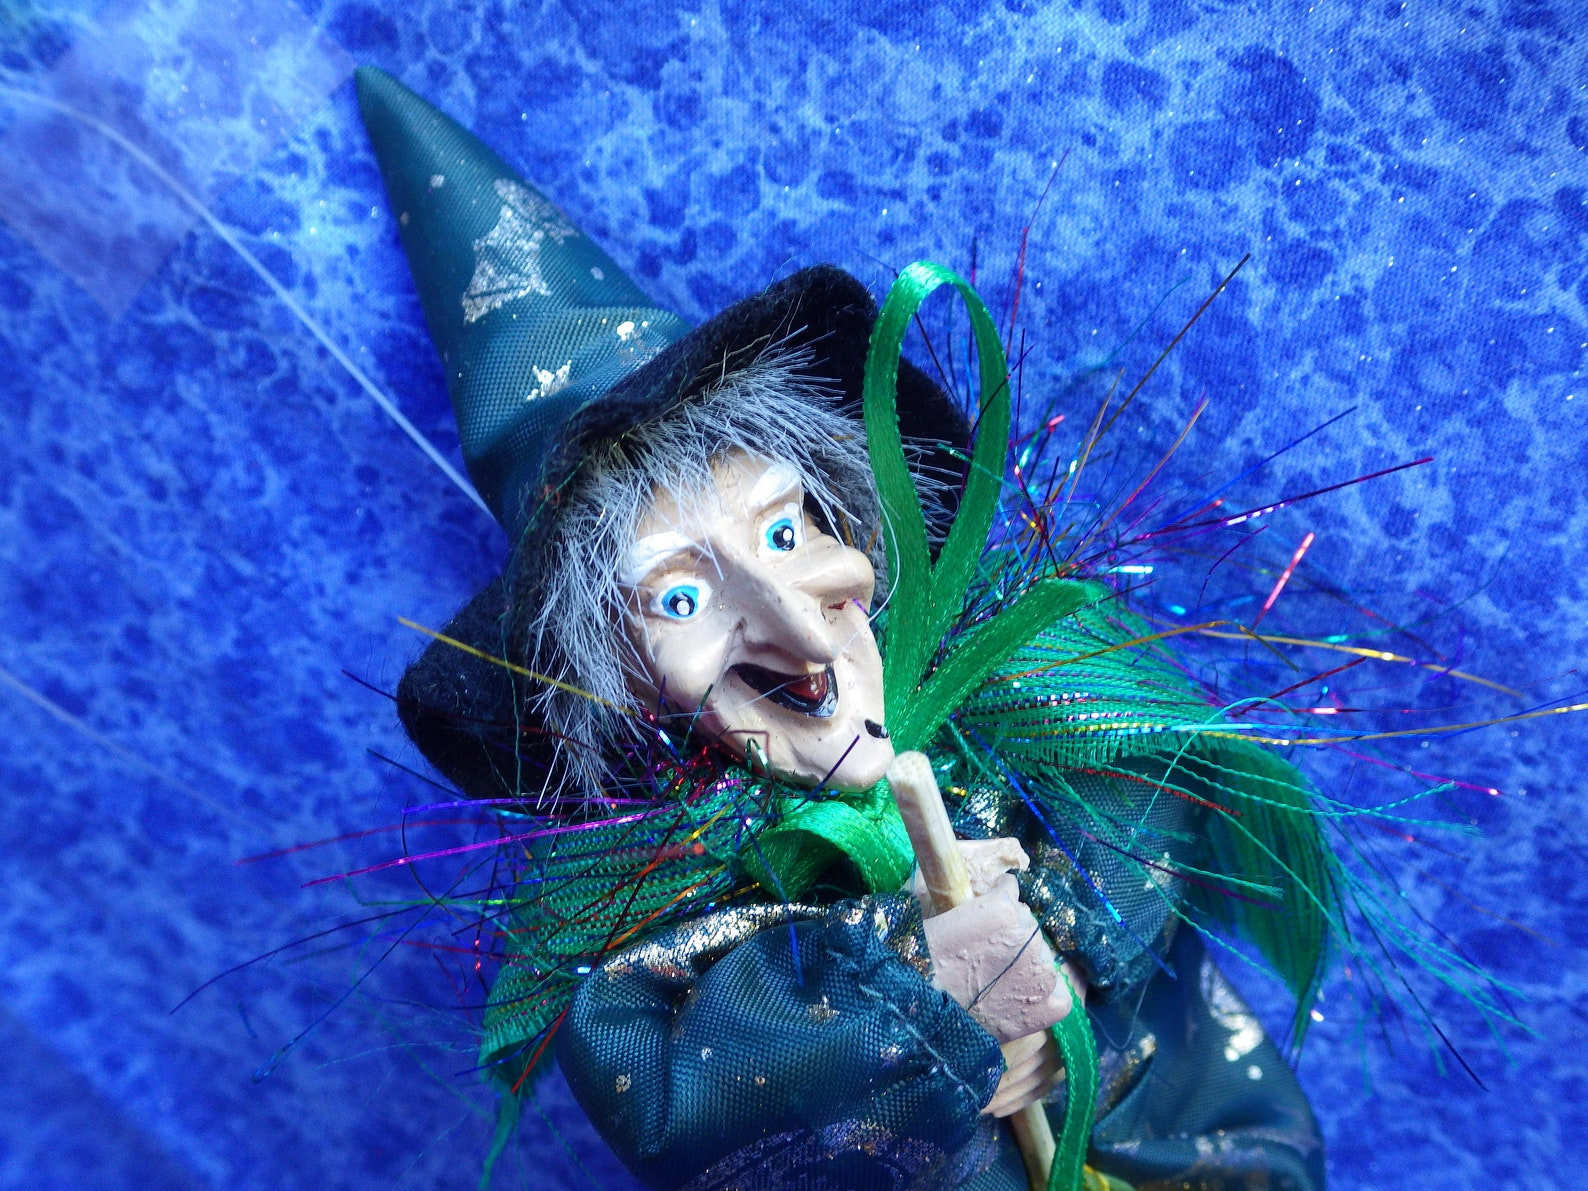 Vintage Green GOOD LUCK WITCH from Germany for Halloween -Kitchen Witch- Walpurgis Night